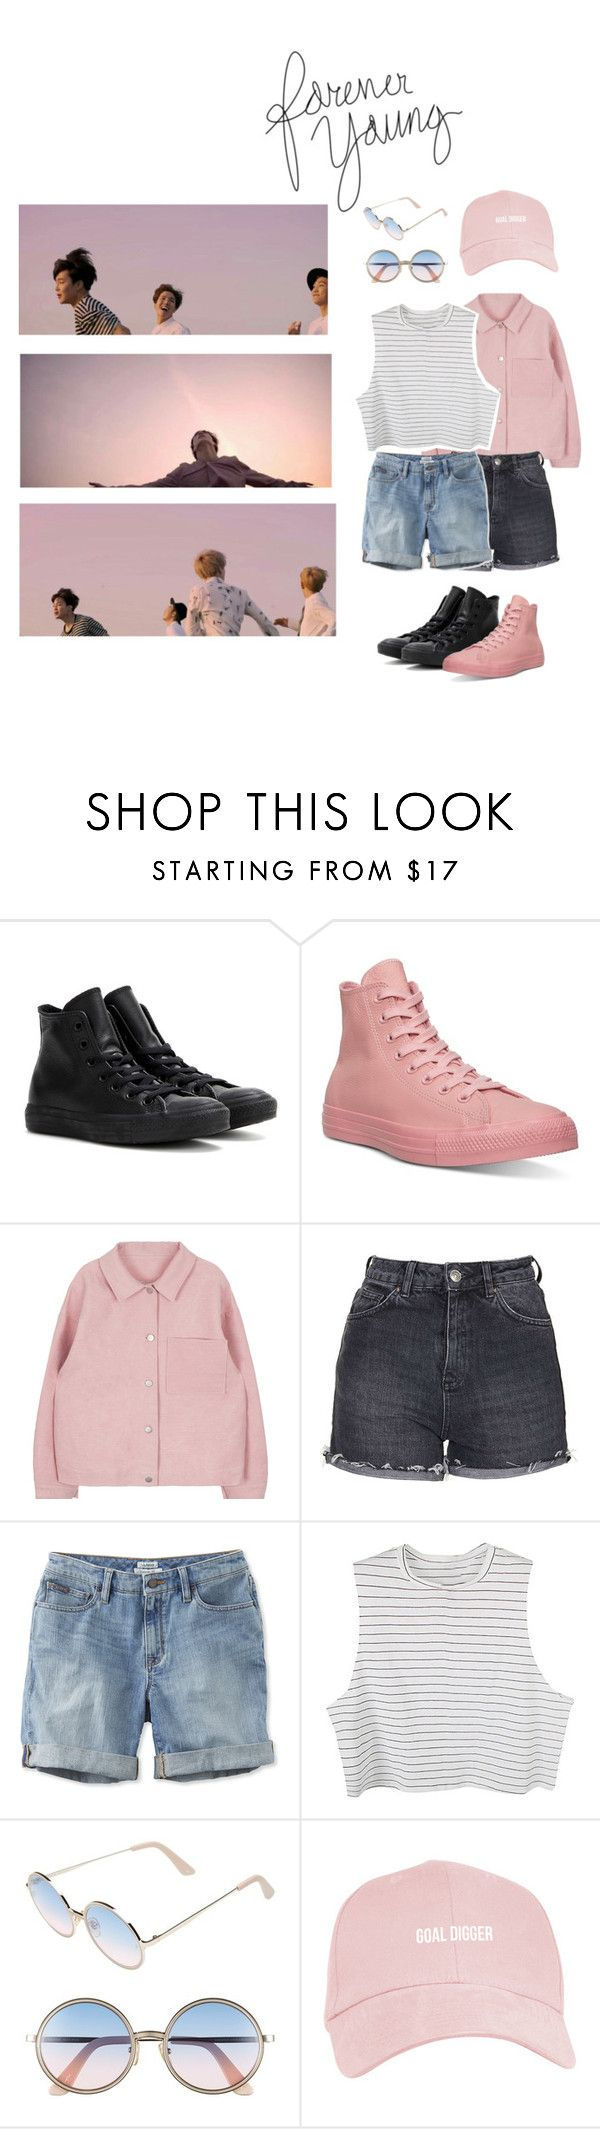 """BTS - Young Forever ♡"" by ellvenlovely ❤ liked on Polyvore featuring Converse, Topshop, L.L.Bean and Sunday Somewhere"